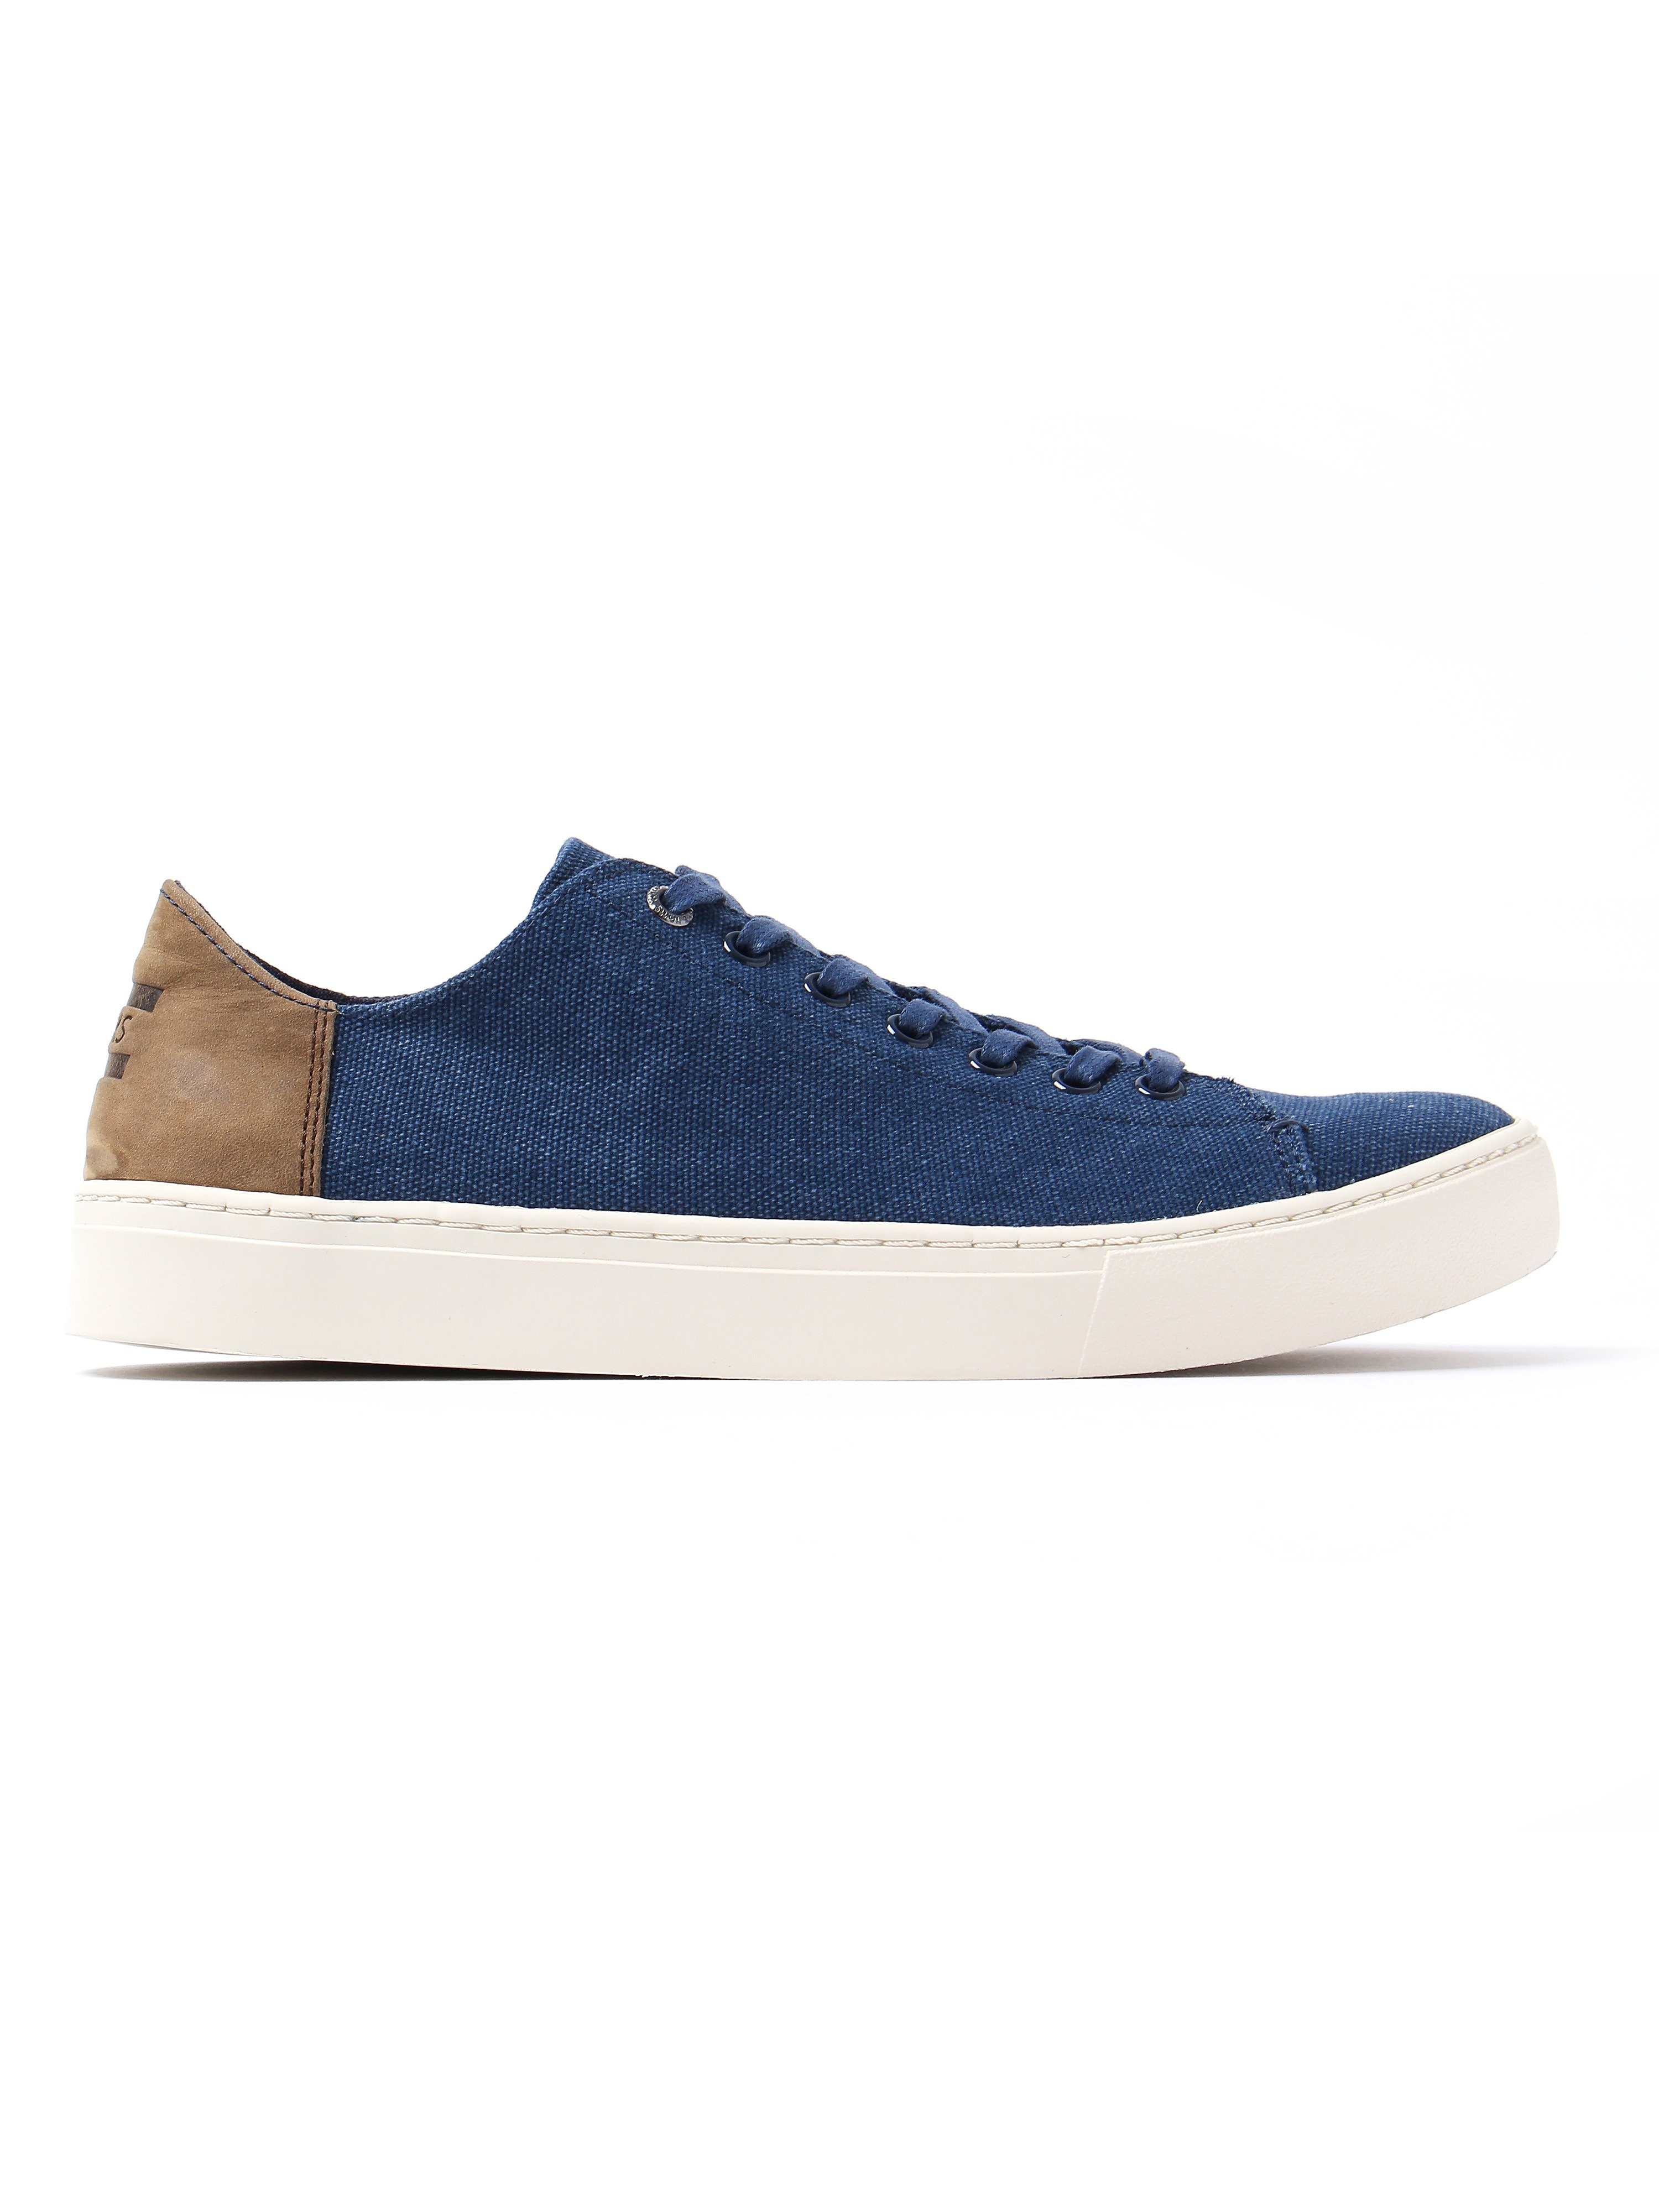 Toms Men's Lenox Washed Canvas Trainers - Navy